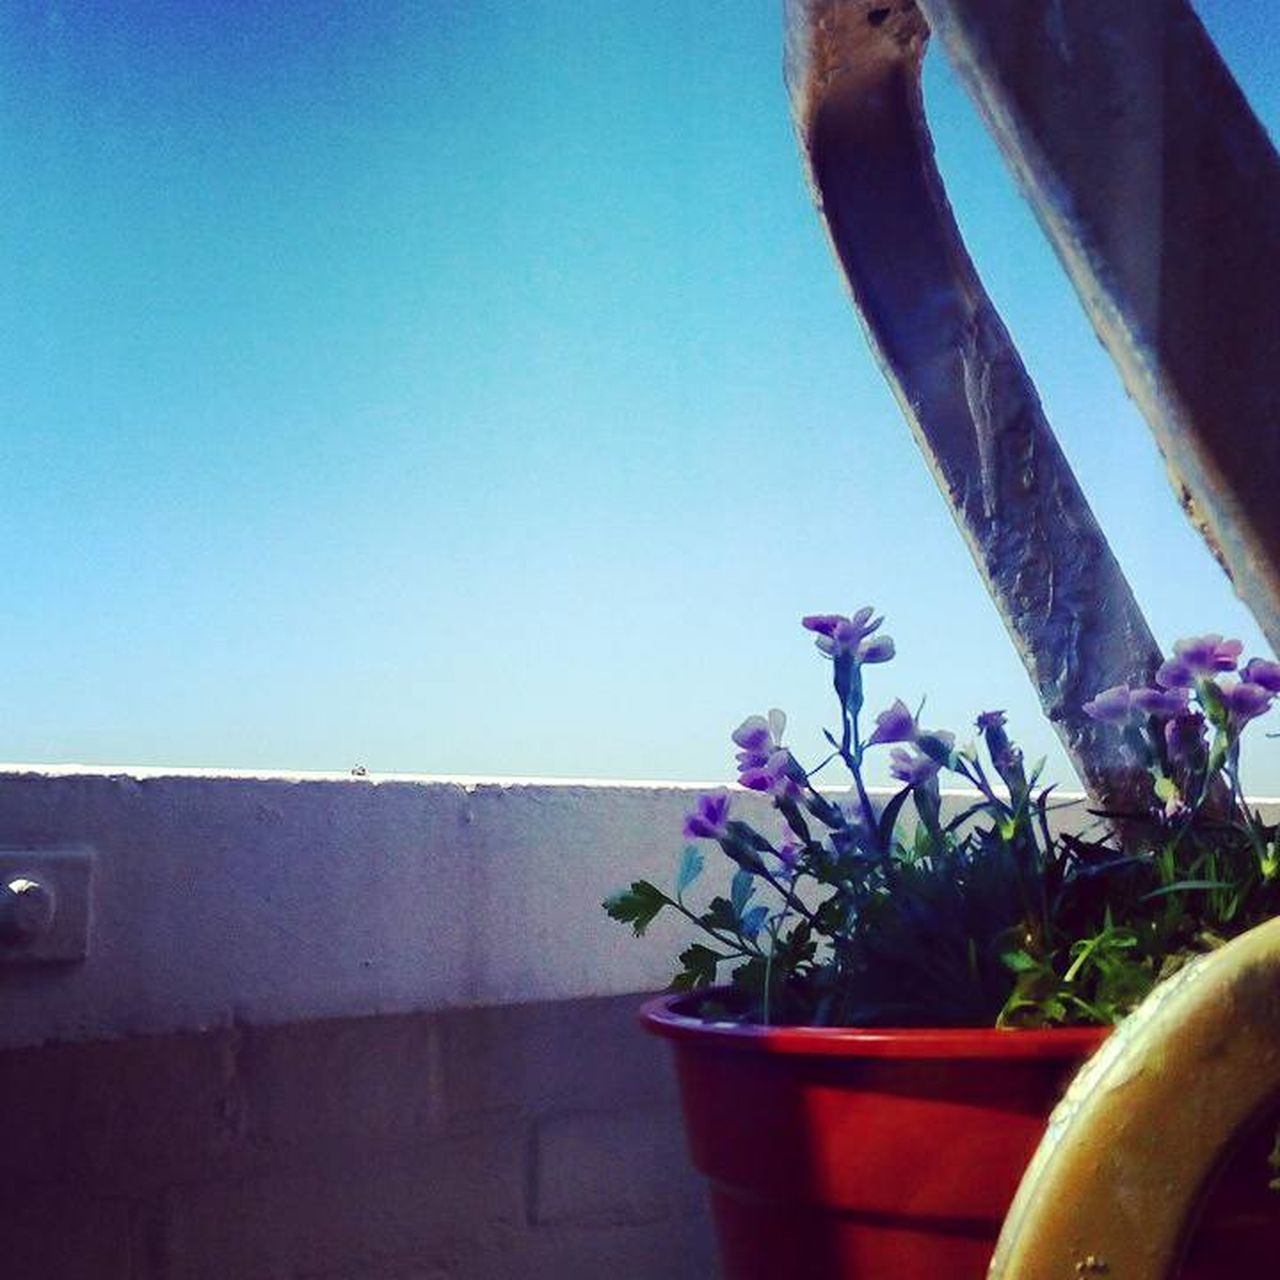 Architecture Beauty In Nature Blue City View  Clear Sky Close-up Day Flower Freshness Growth Home Horizon Over Water Nature No People Nostalgia Outdoors Plant Planting Seeds Potted Plant Sky Sodade Spring Summer The Hagye Urban Gardening